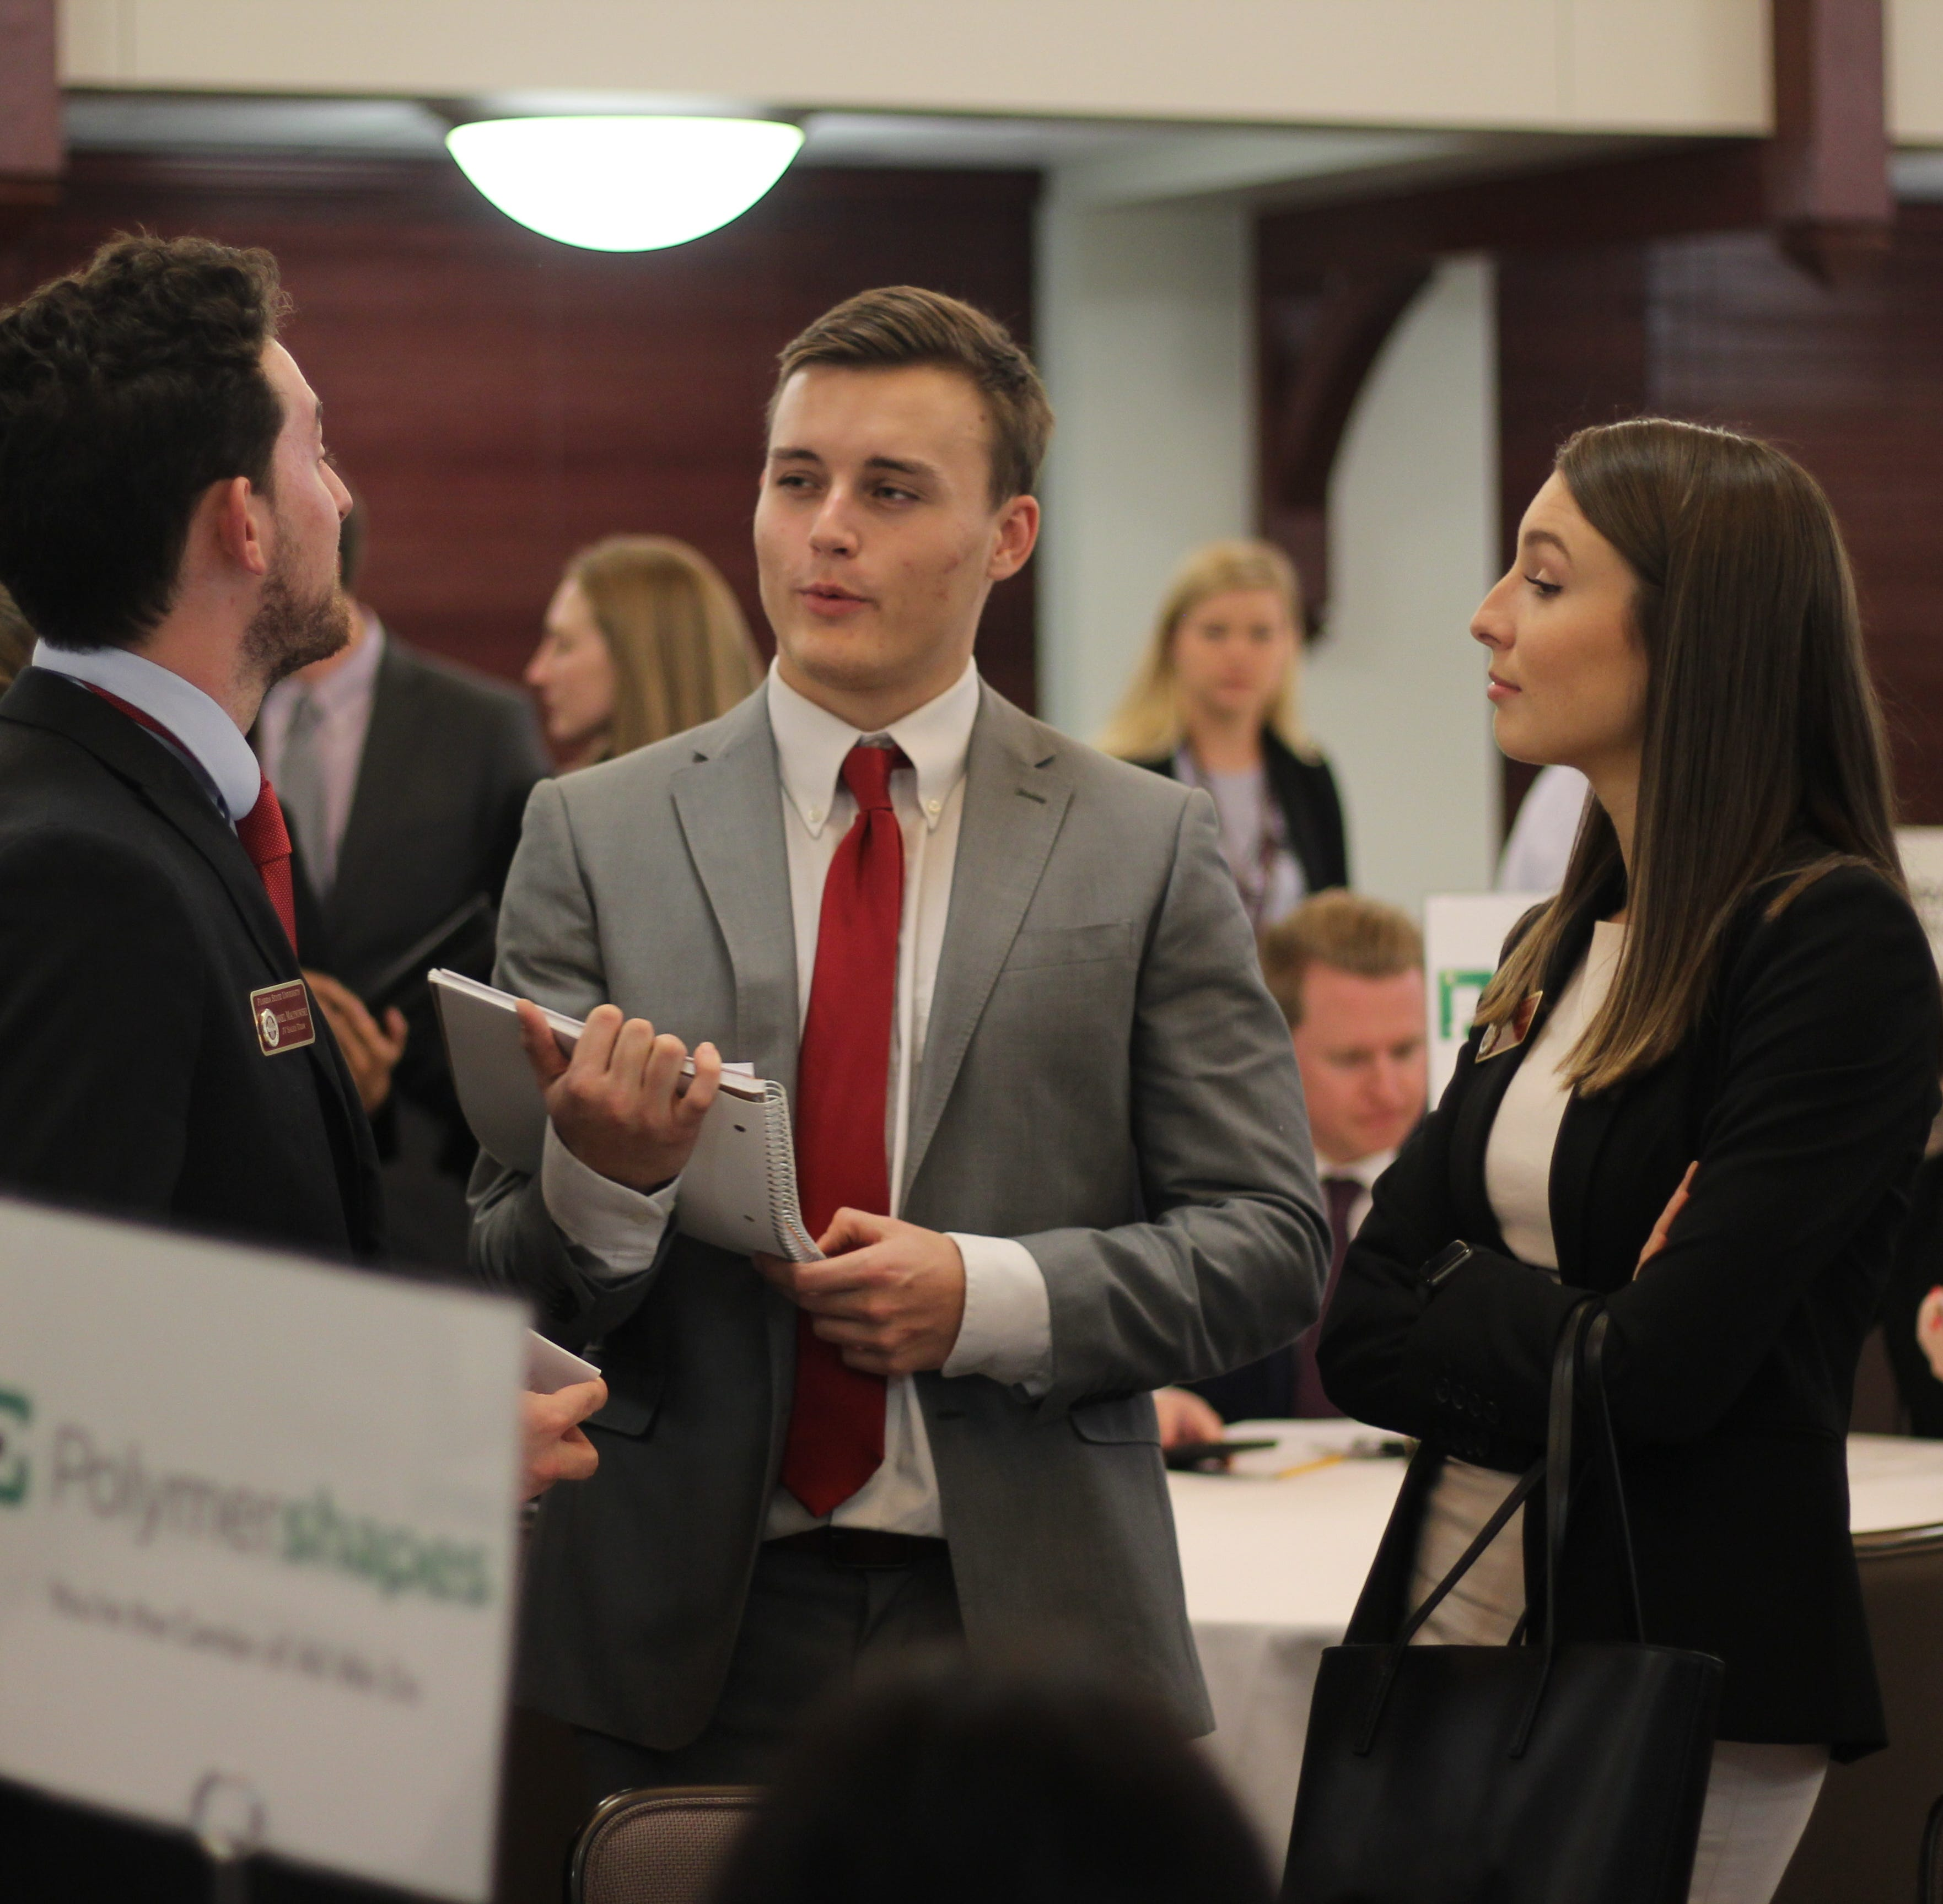 Seminoles showcase their sales skills